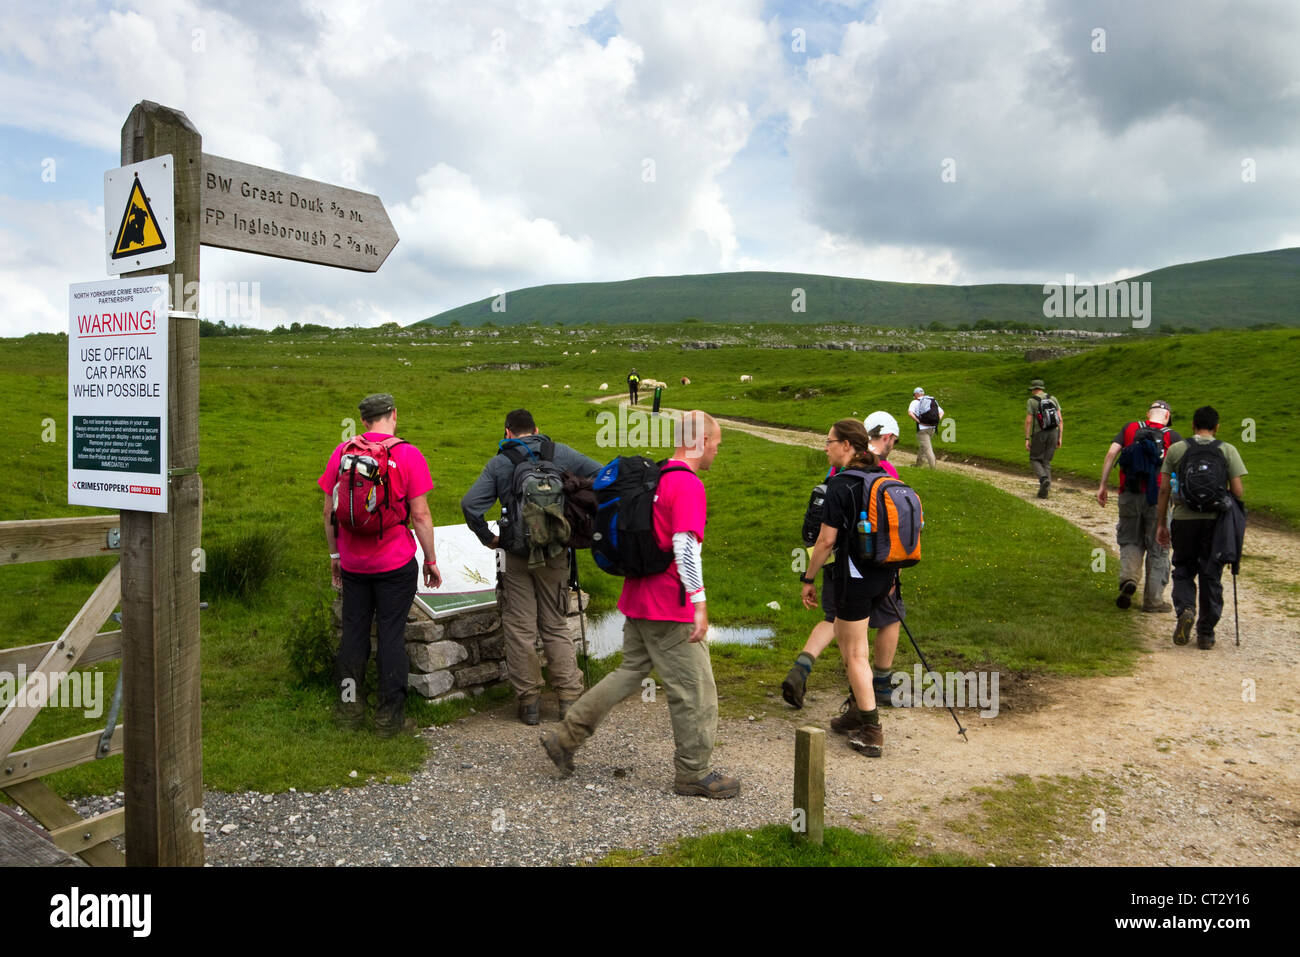 Hiking team, men & women ascending Great Douk and Ingleton_ Signposted route for group of walkers to ascend - Stock Image